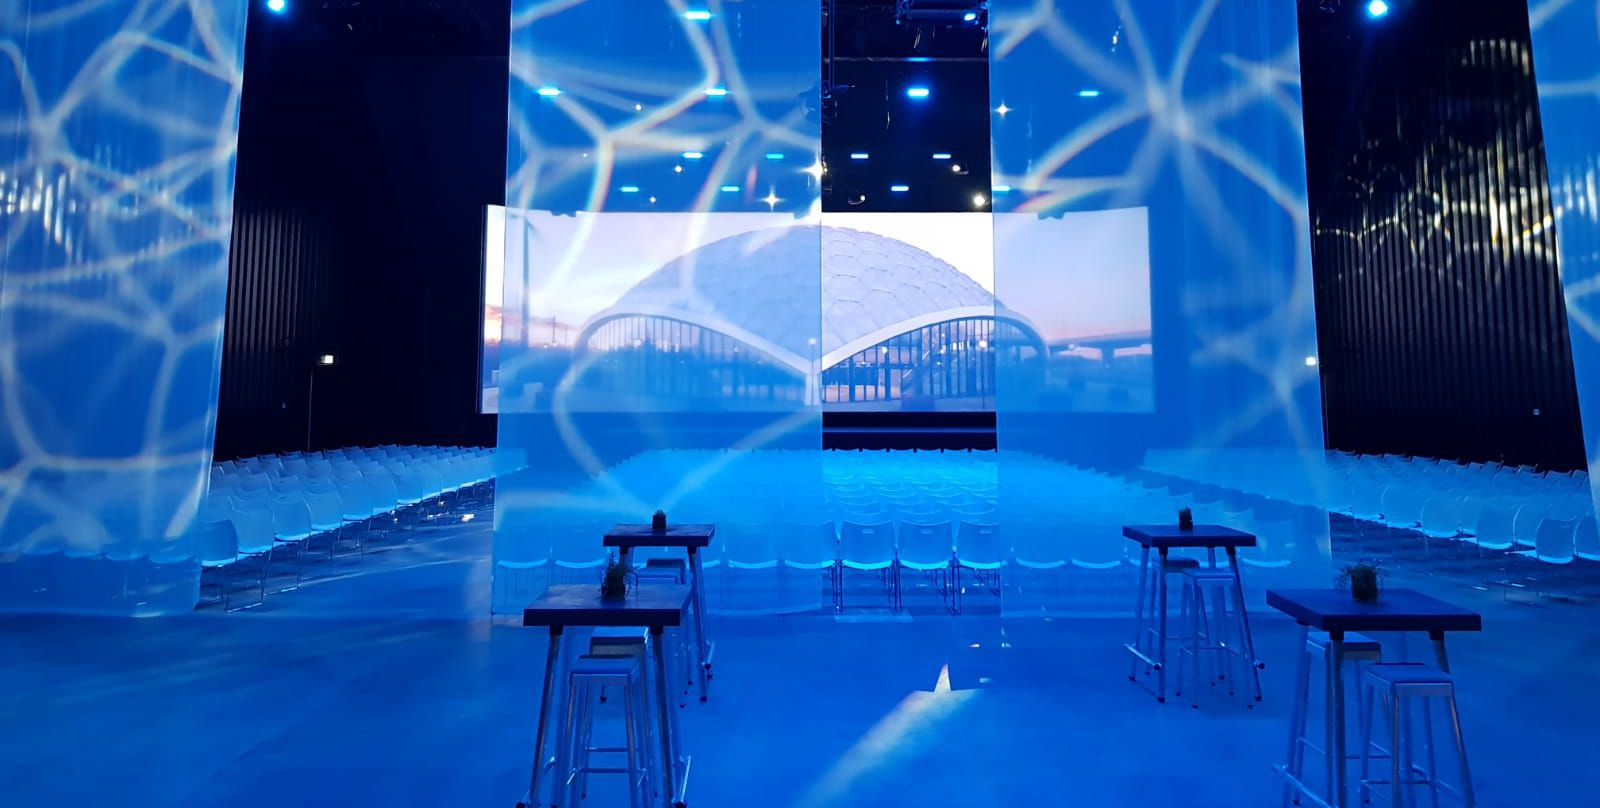 Productlancering in Amsterdome